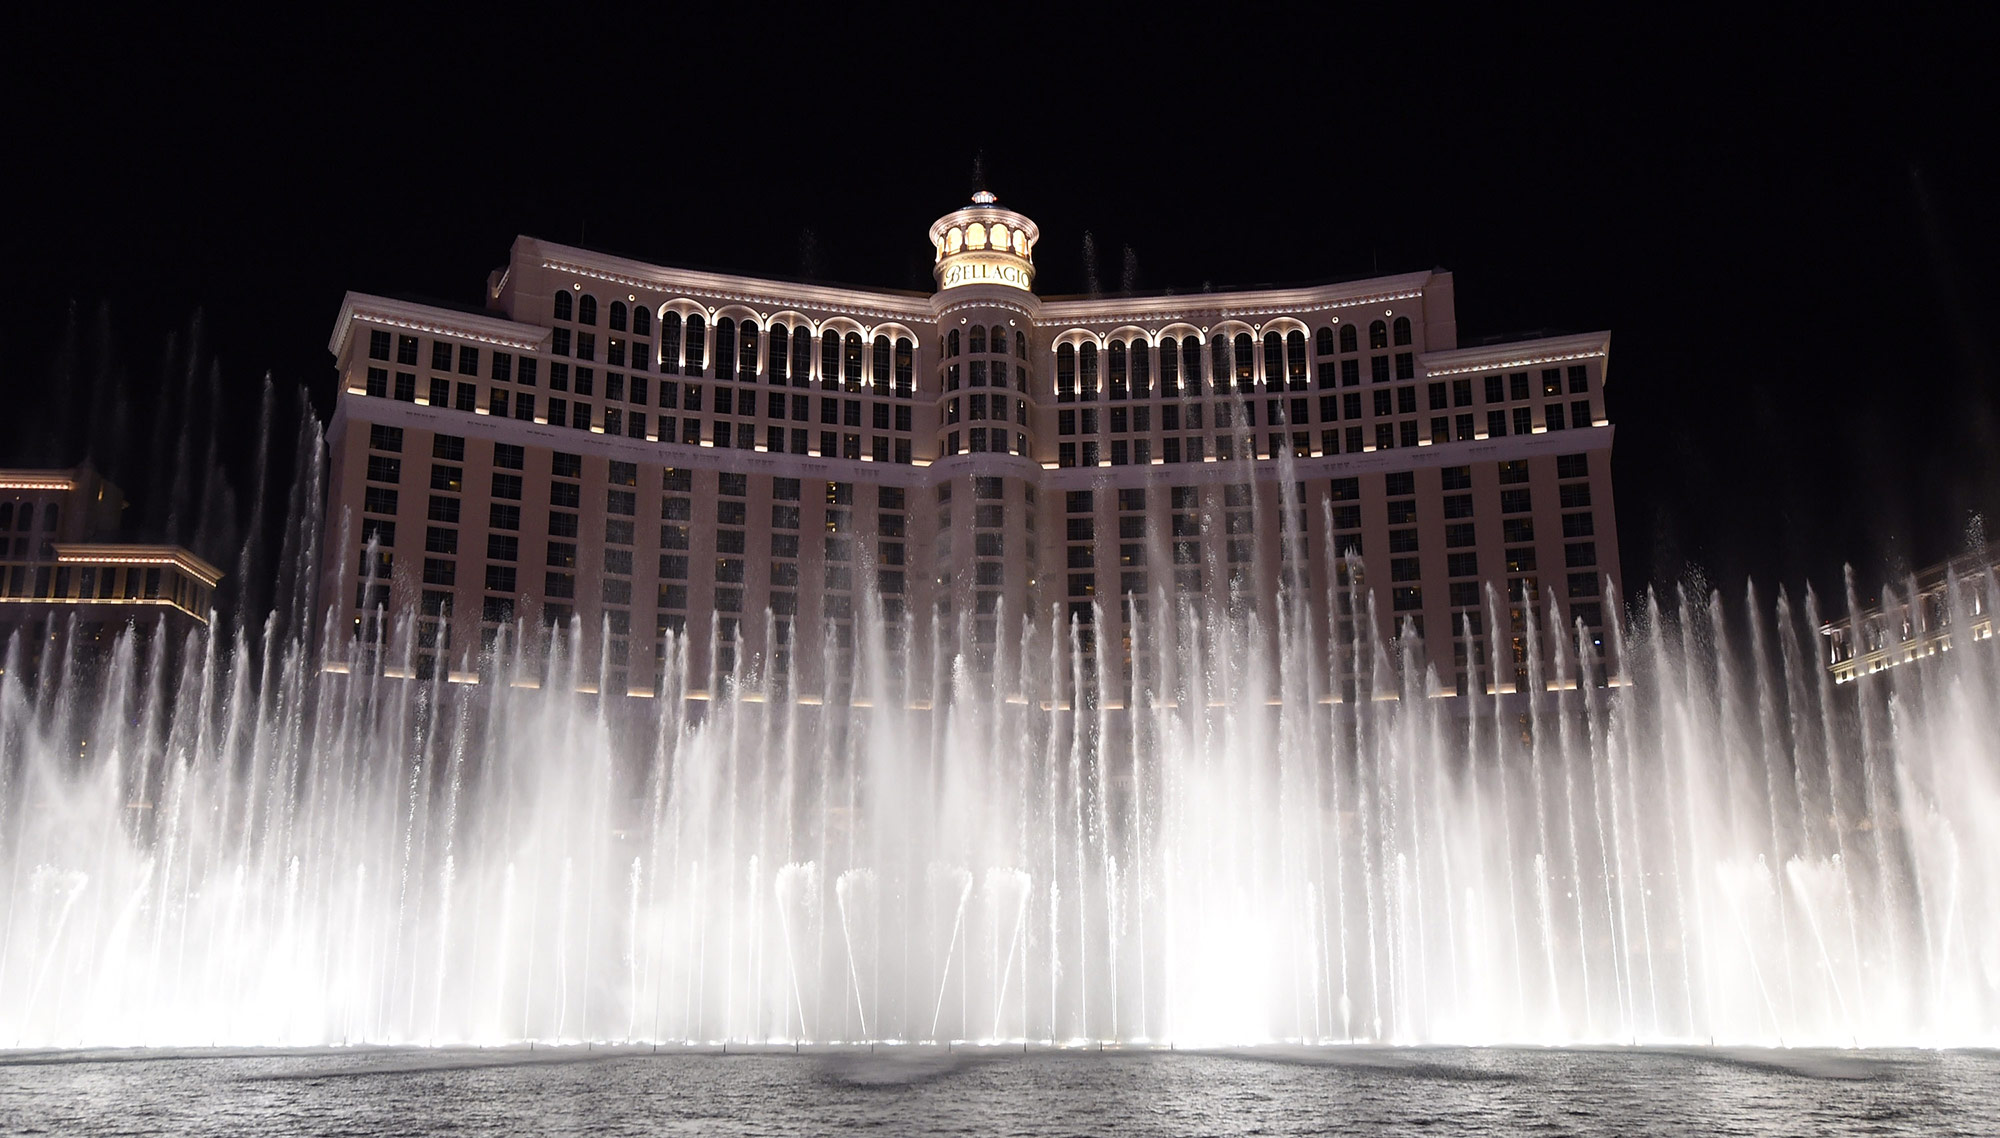 The newest Fountains of Bellagio show is the only time a medley has been created specifically for the Fountains, and is the first EDM compilation to join the lineup. (Credit Ethan Miller for Bellagio)